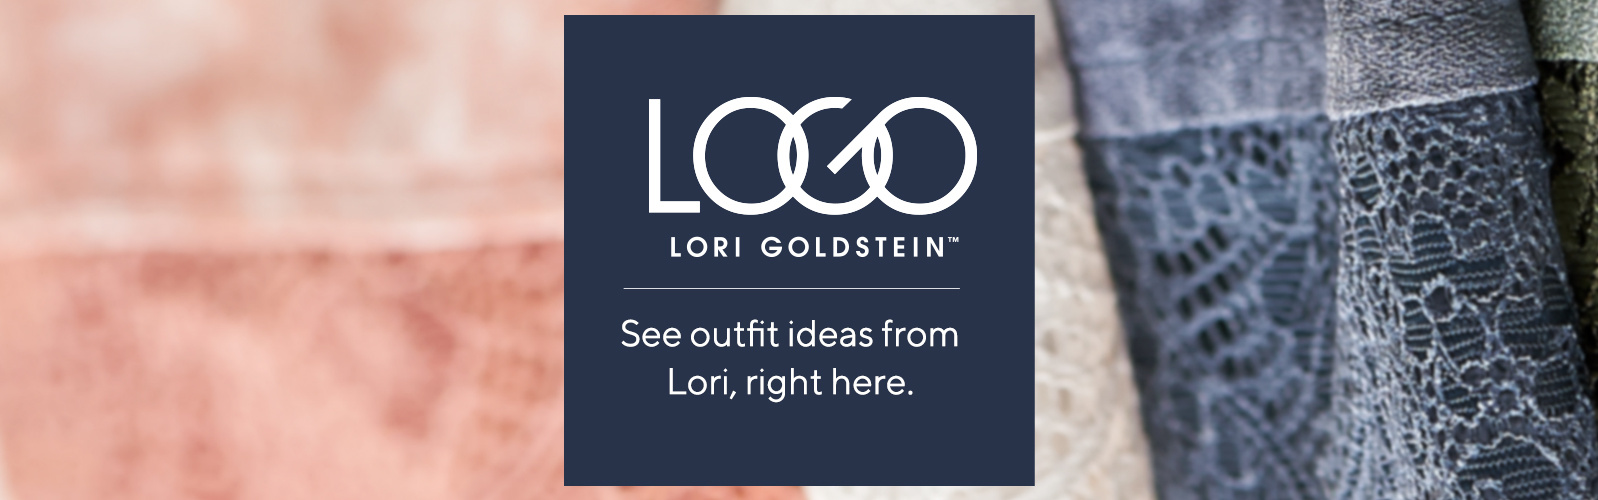 LOGO by Lori Goldstein Look Book — QVC.com.